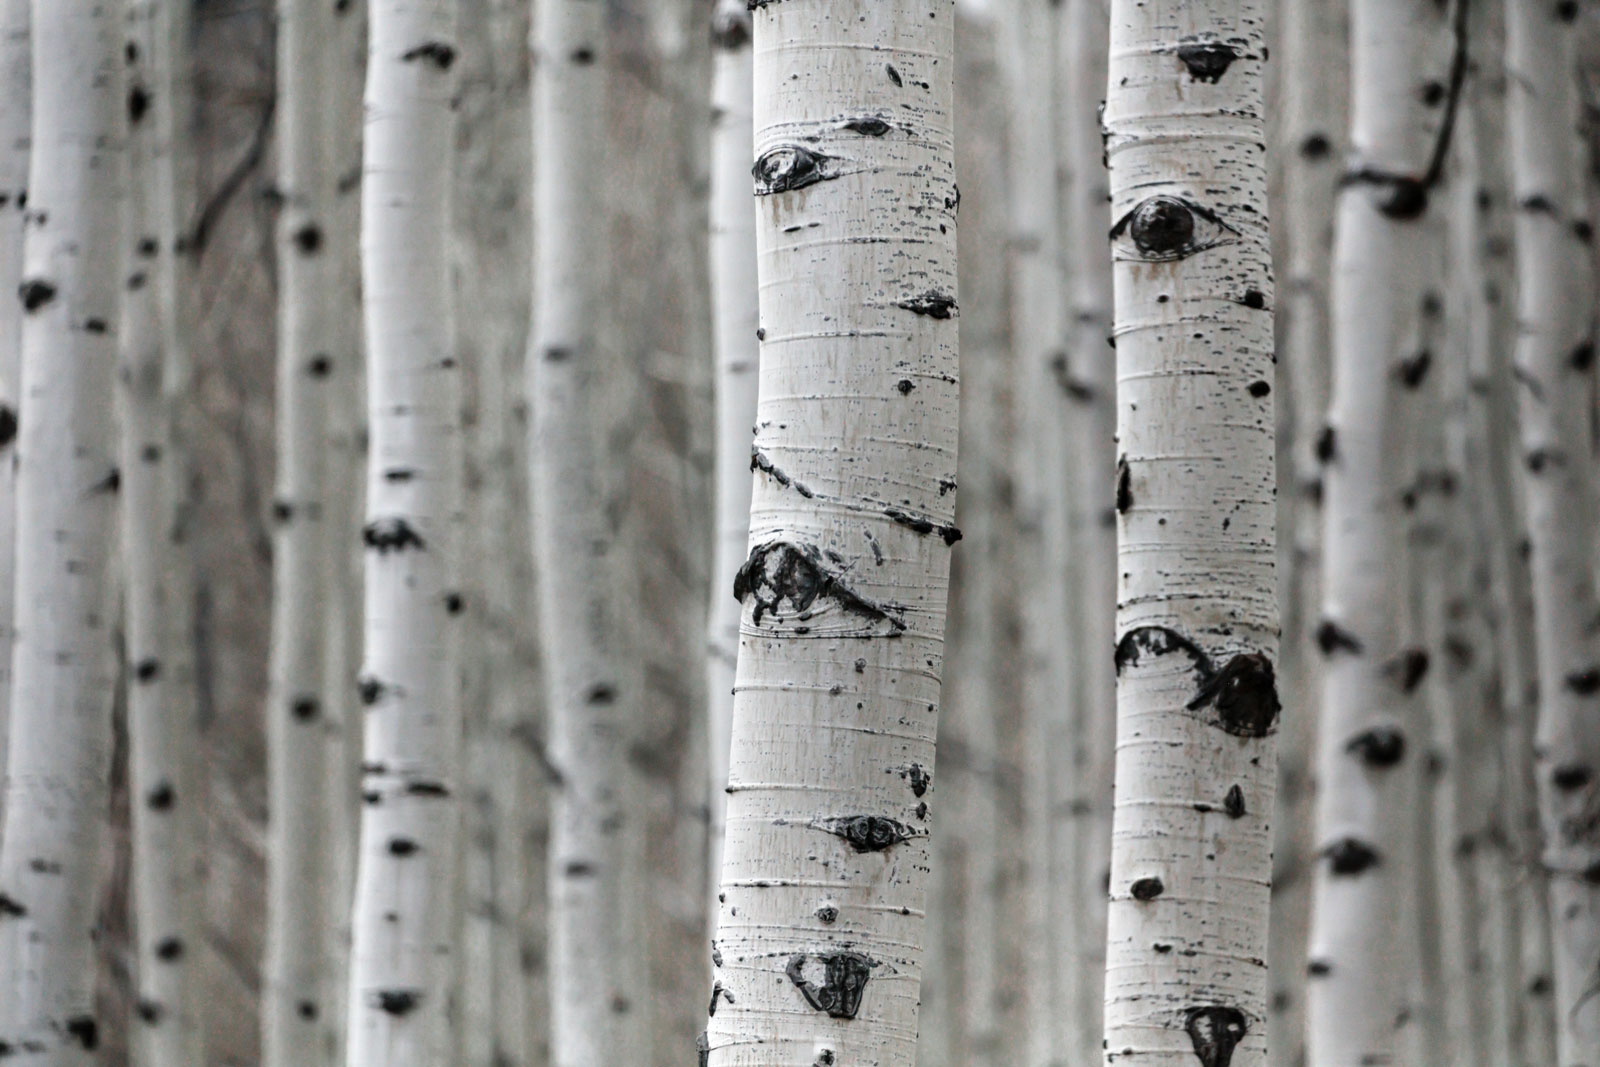 Birch Trees photo by Patrick Hendry